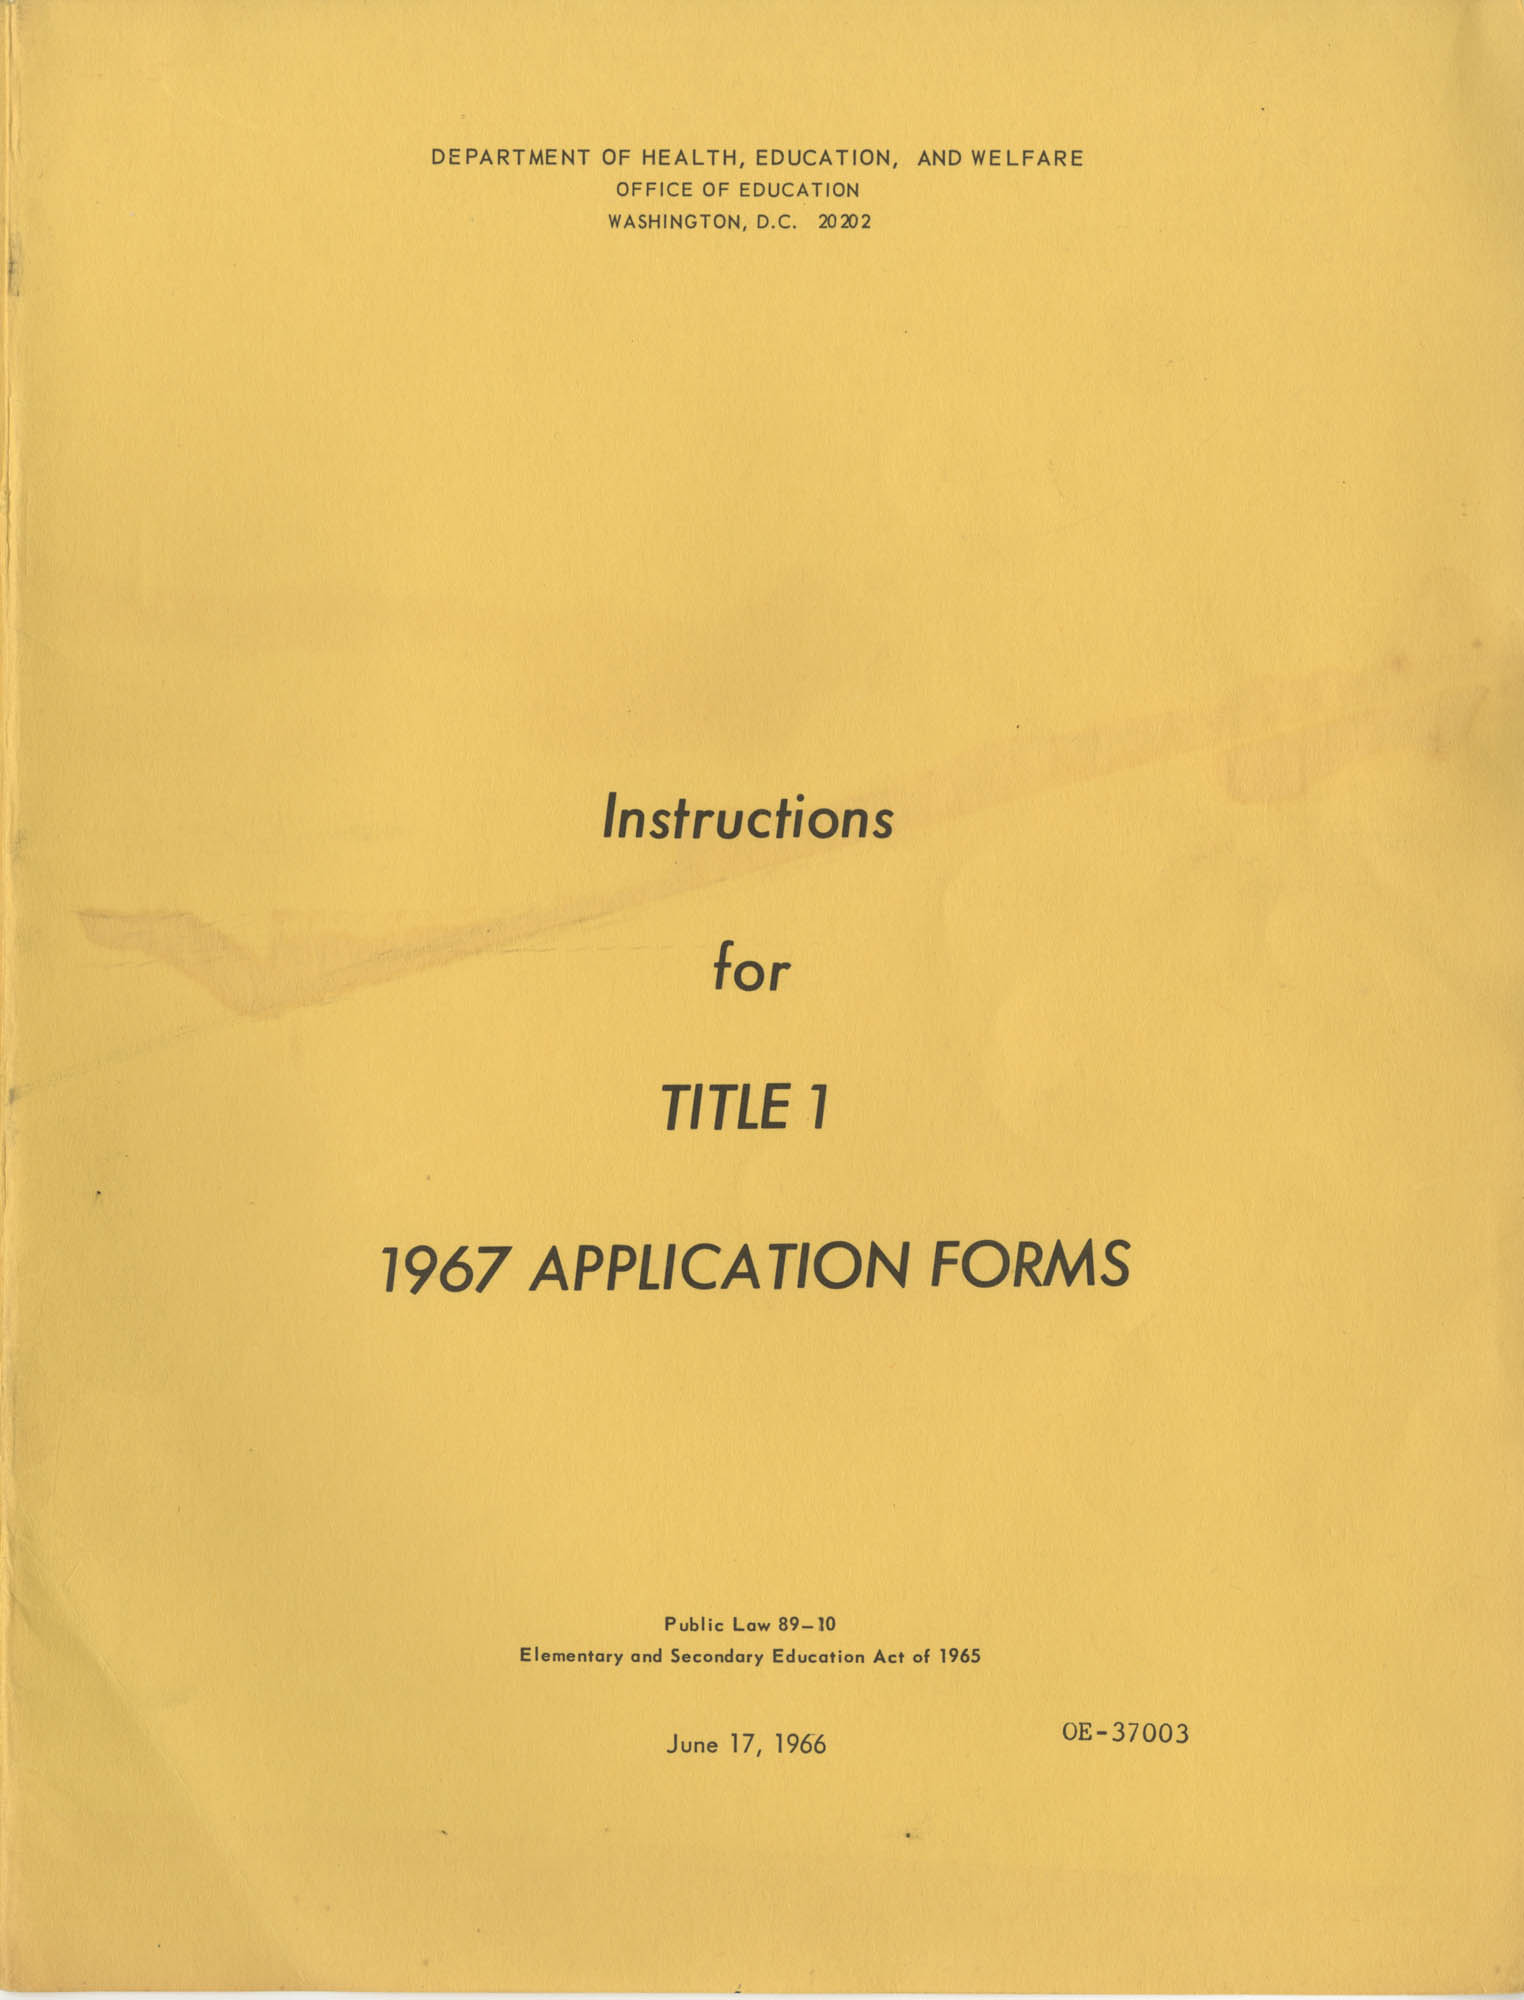 Instructions for Title 1, 1967 Application Forms